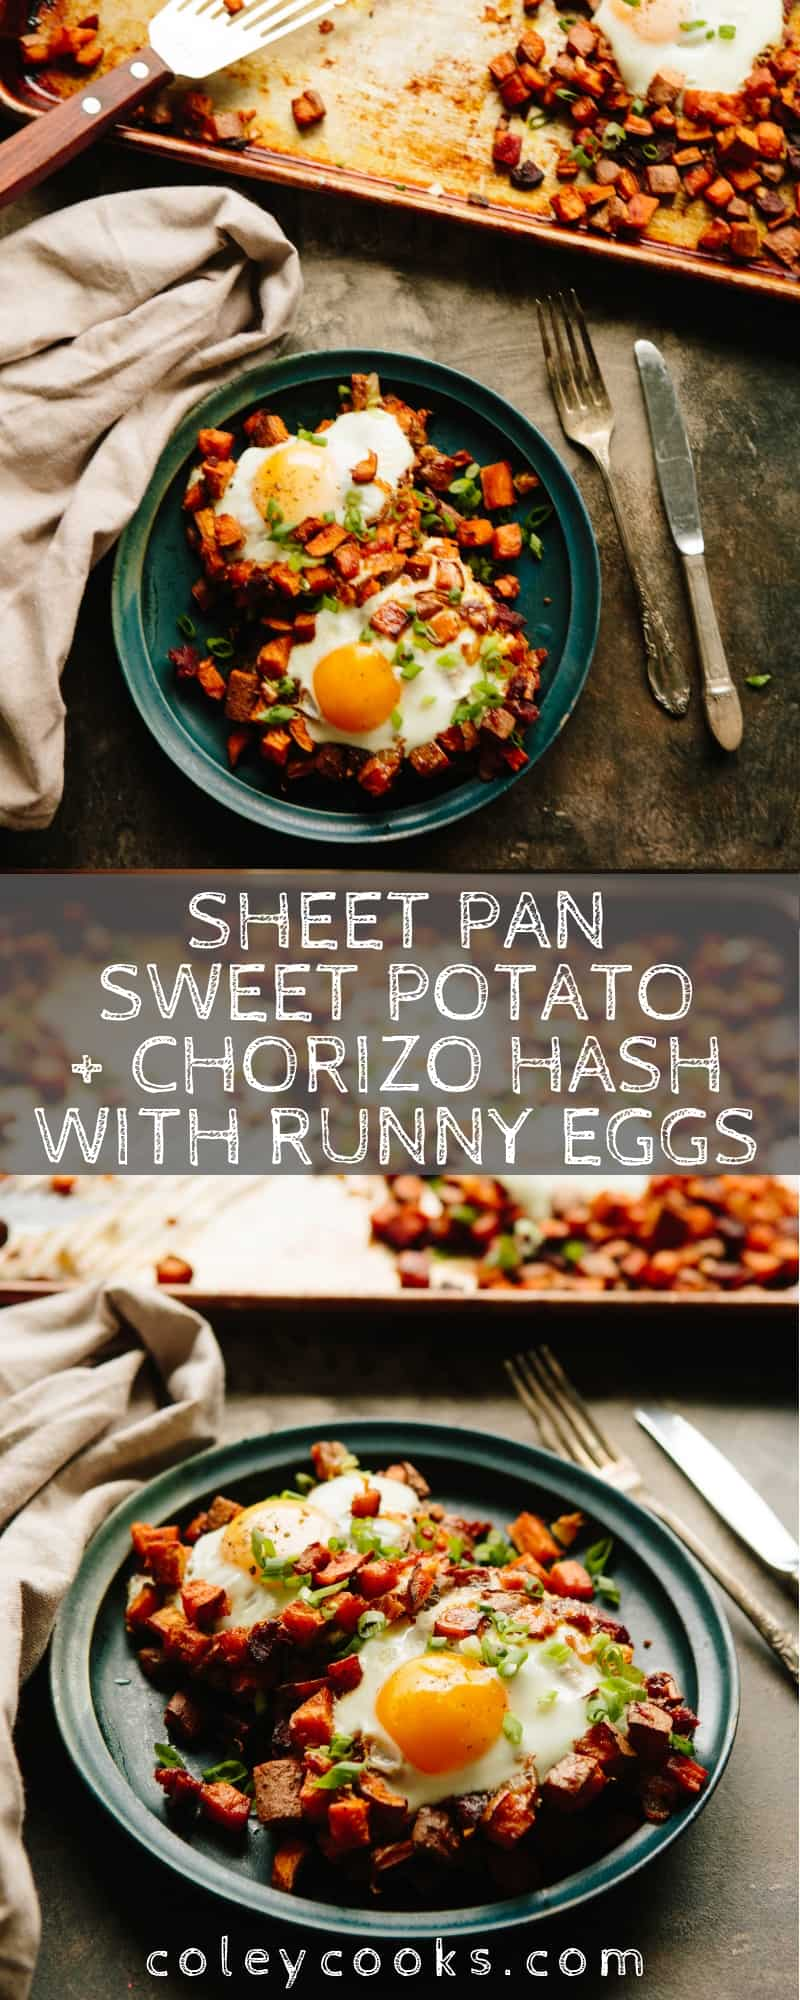 This quick and easy recipe for Sheet Pan Sweet Potato + Chorizo Hash with Runny Eggs is baked instead of fried, so it's healthier and easier to clean up! #easy #breakfast #brunch #recipe #paleo #chorizo #sweet #potatoes #eggs #sheetpan #healthy | ColeyCooks.com